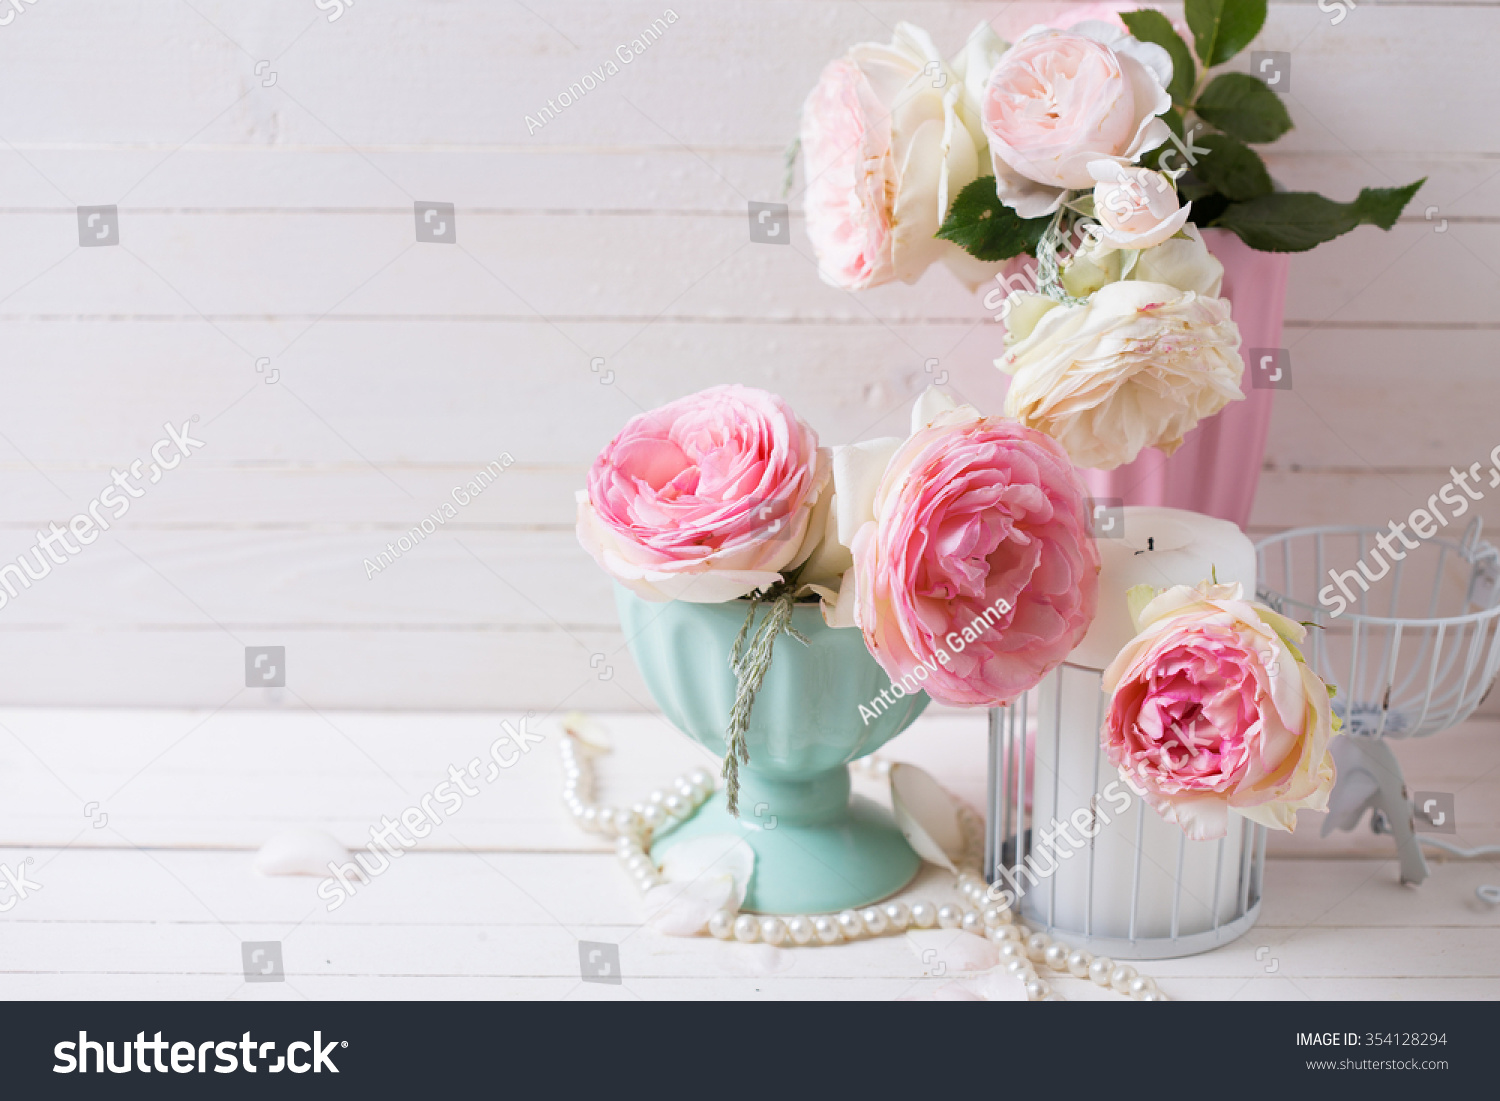 Sweet pink roses flowers vases candle stock photo 354128294 sweet pink roses flowers in vases and candle on white painted wooden background selective focus reviewsmspy